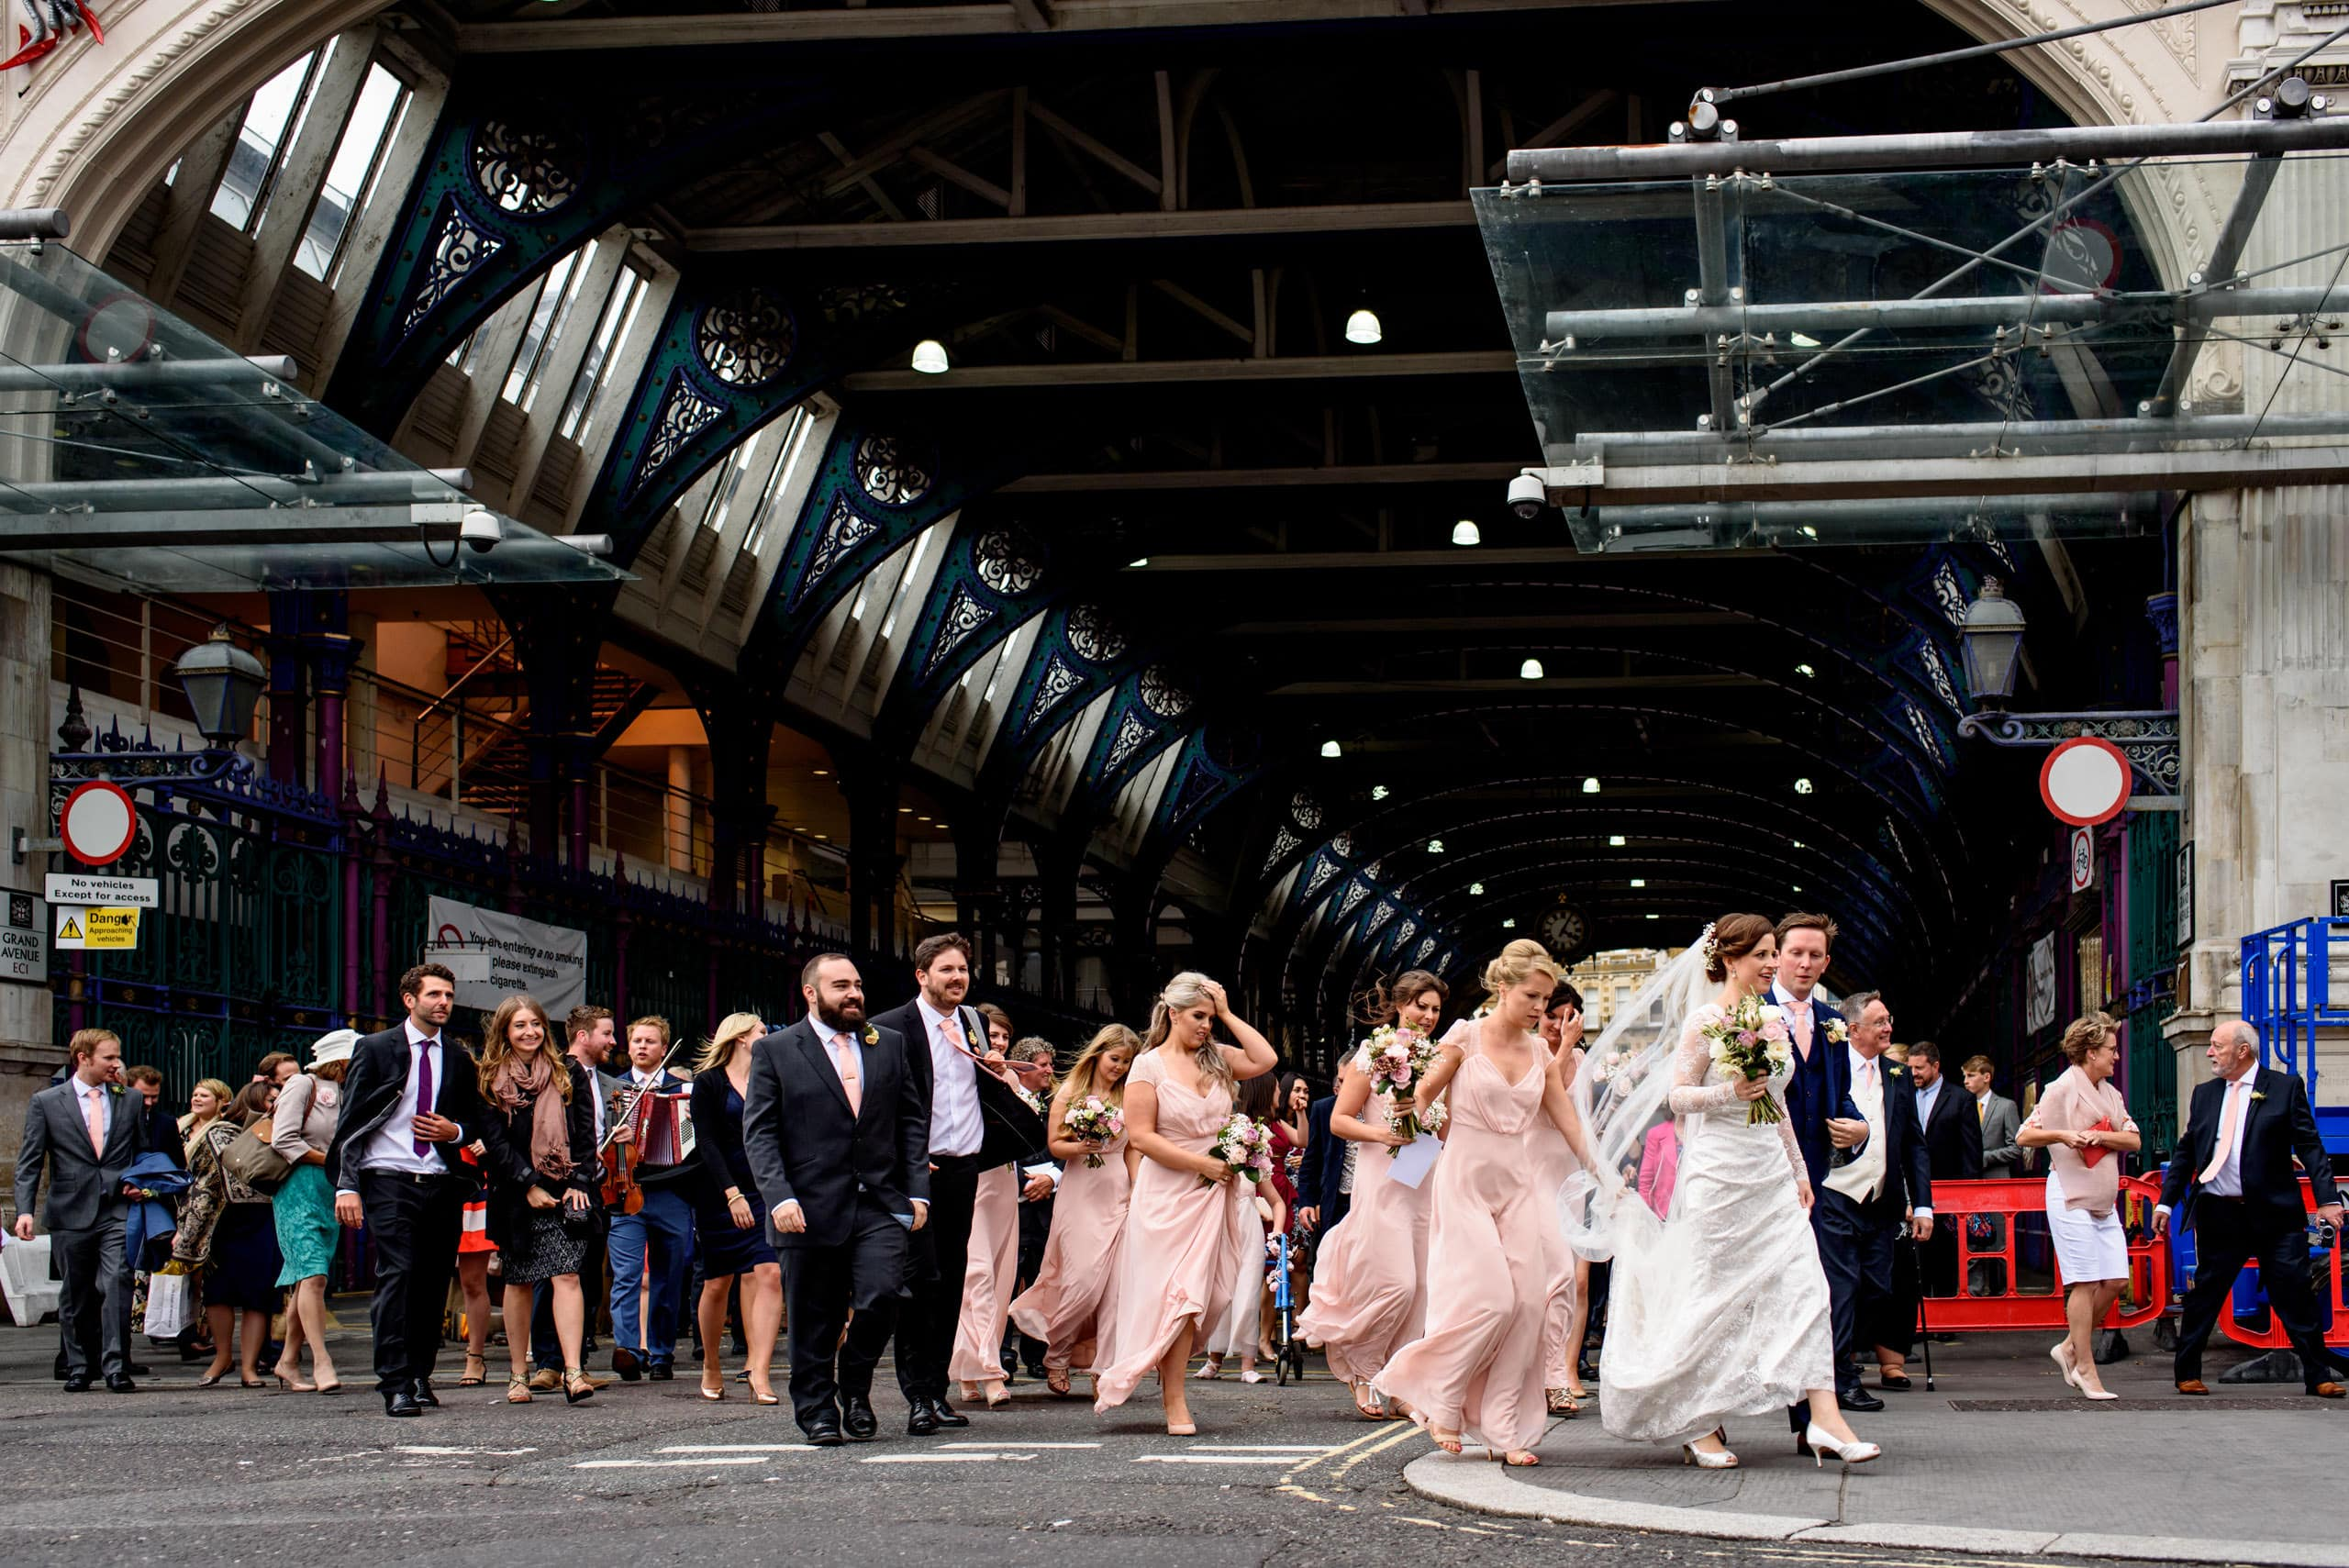 wedding party walking through Smithfields Market in London